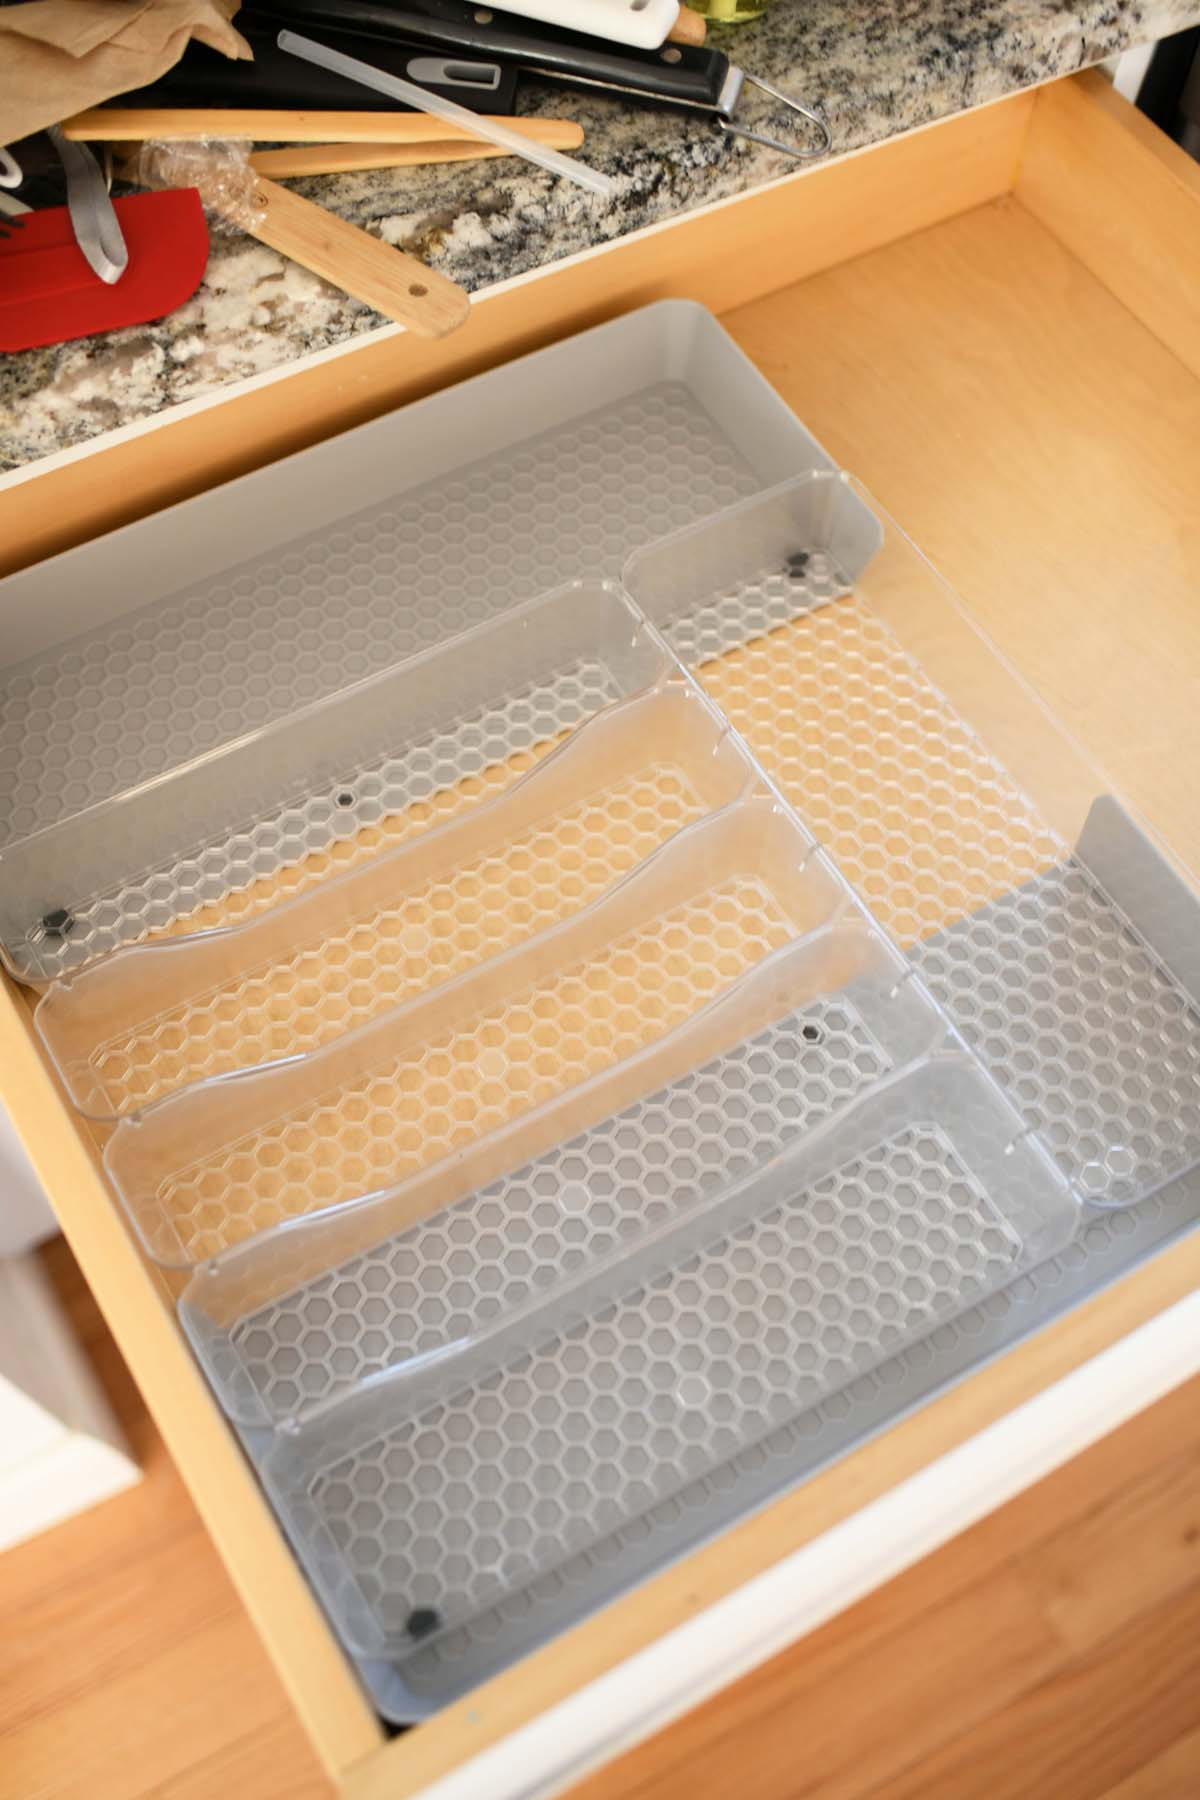 Hexa By Spectrum Expandable Drawer Organizer. Item is inside a drawer, expanded.